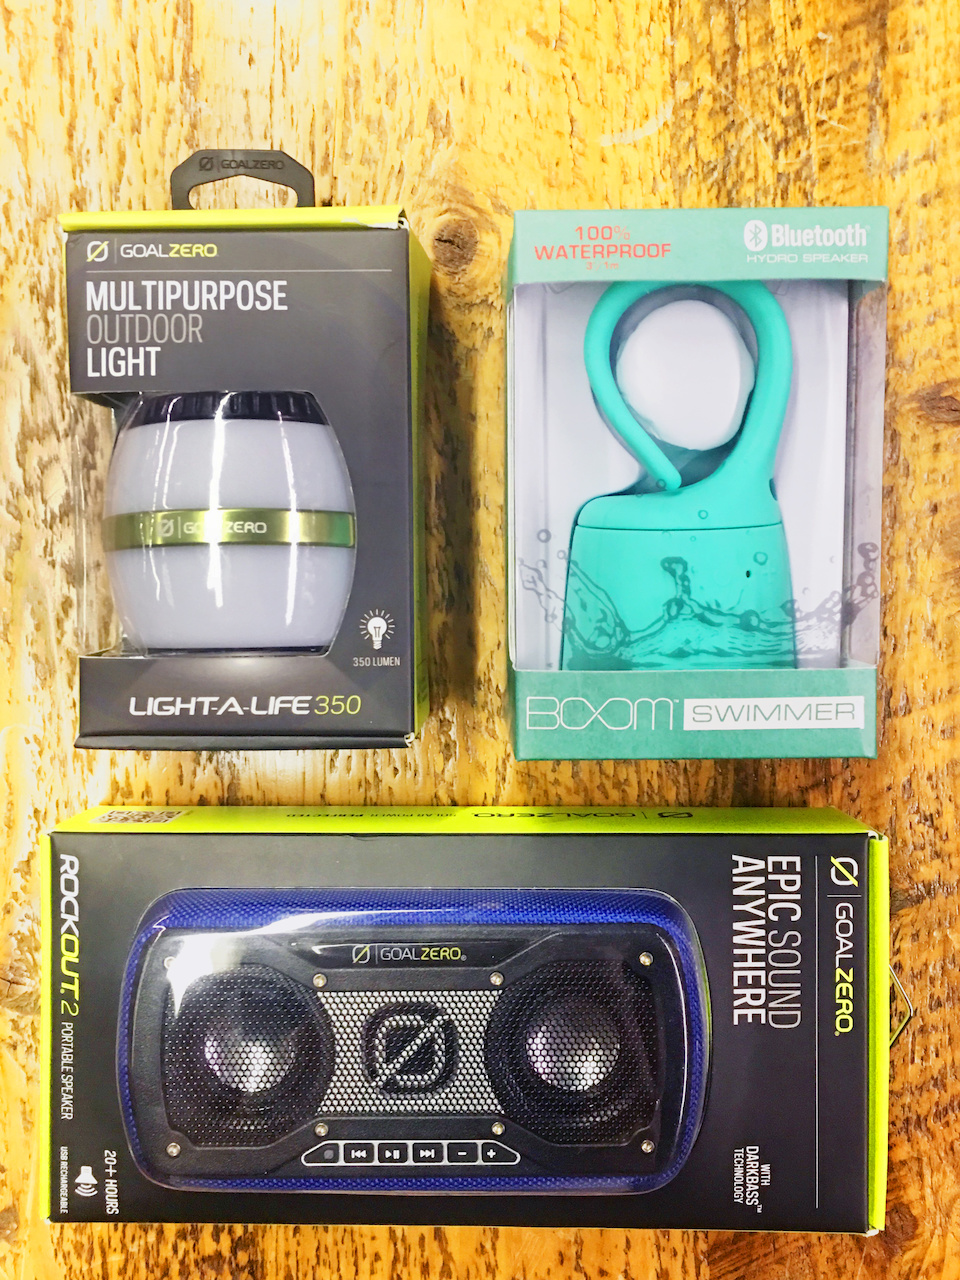 Goal Zero RockOut2 speaker and Boom Swimmer speaker, $59.99 each, and the Goal Zero Light-A-Life 350, $39.99, at Alabama Outdoors